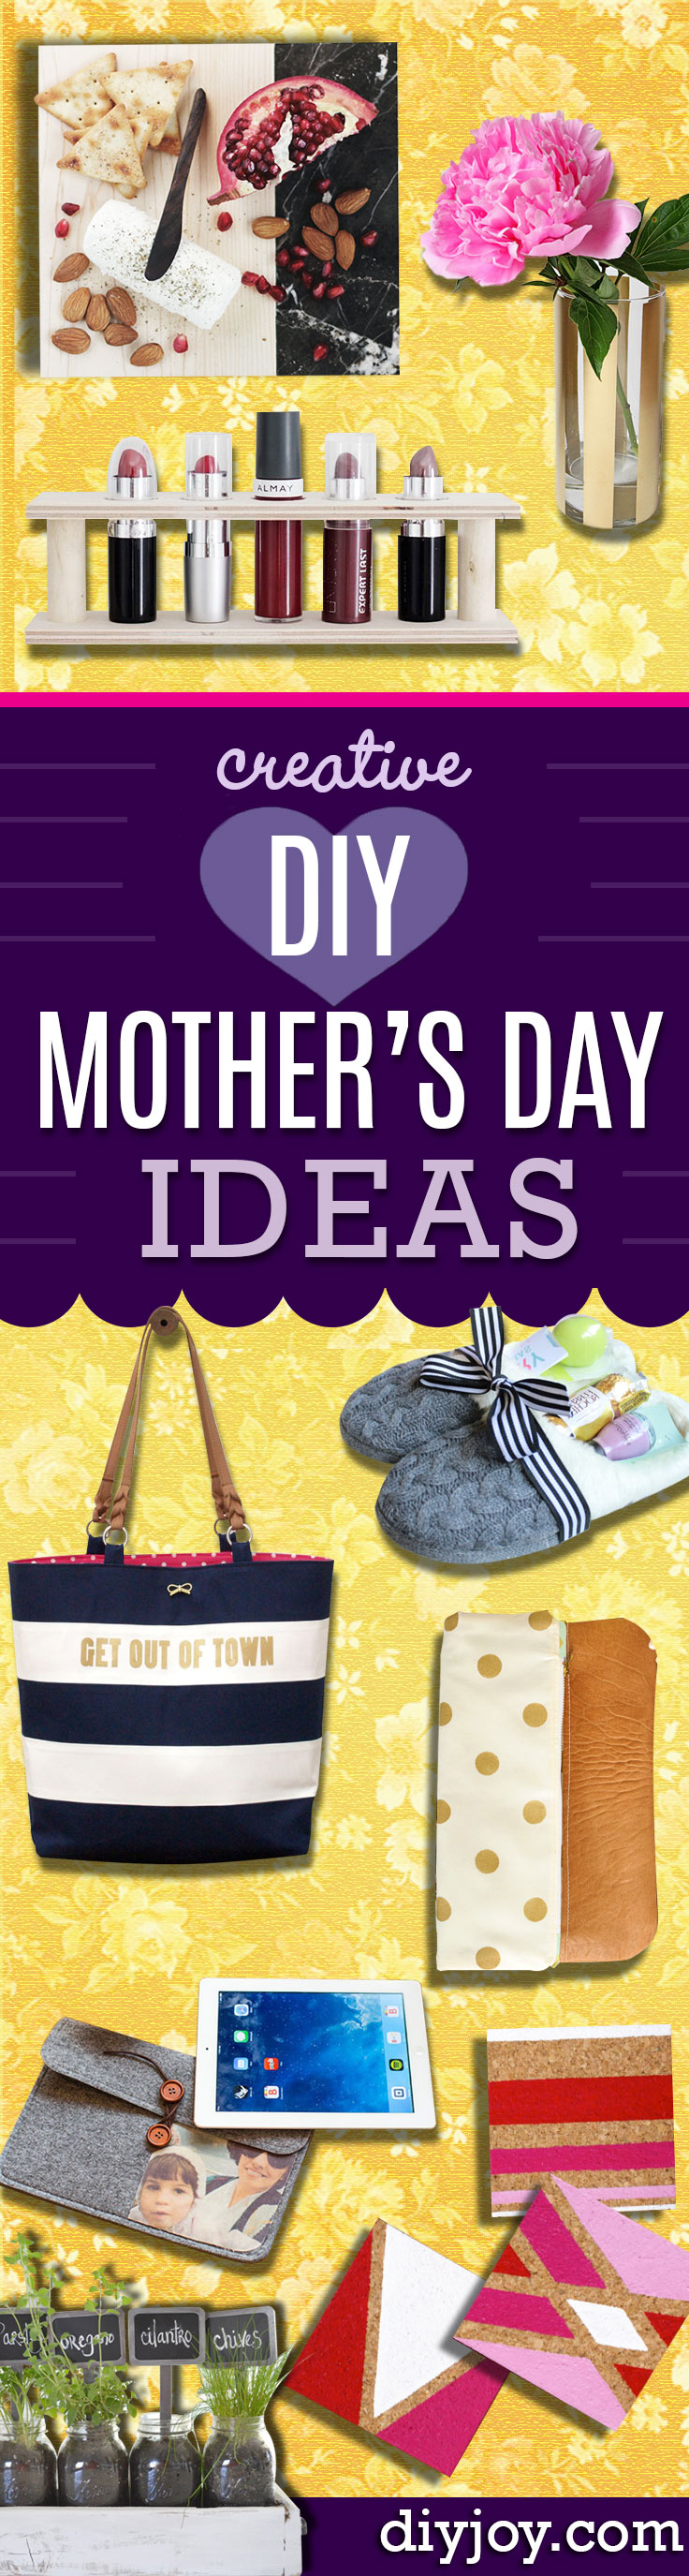 DIY Mothers Day Gifts Ideas - Thoughtful Homemade Gifts for Mom. Handmade Ideas from Daughter, Son, Kids, Teens or Baby - Unique, Easy, Cheap Do It Yourself Crafts To Make for Mothers Day, complete with tutorials and instructions